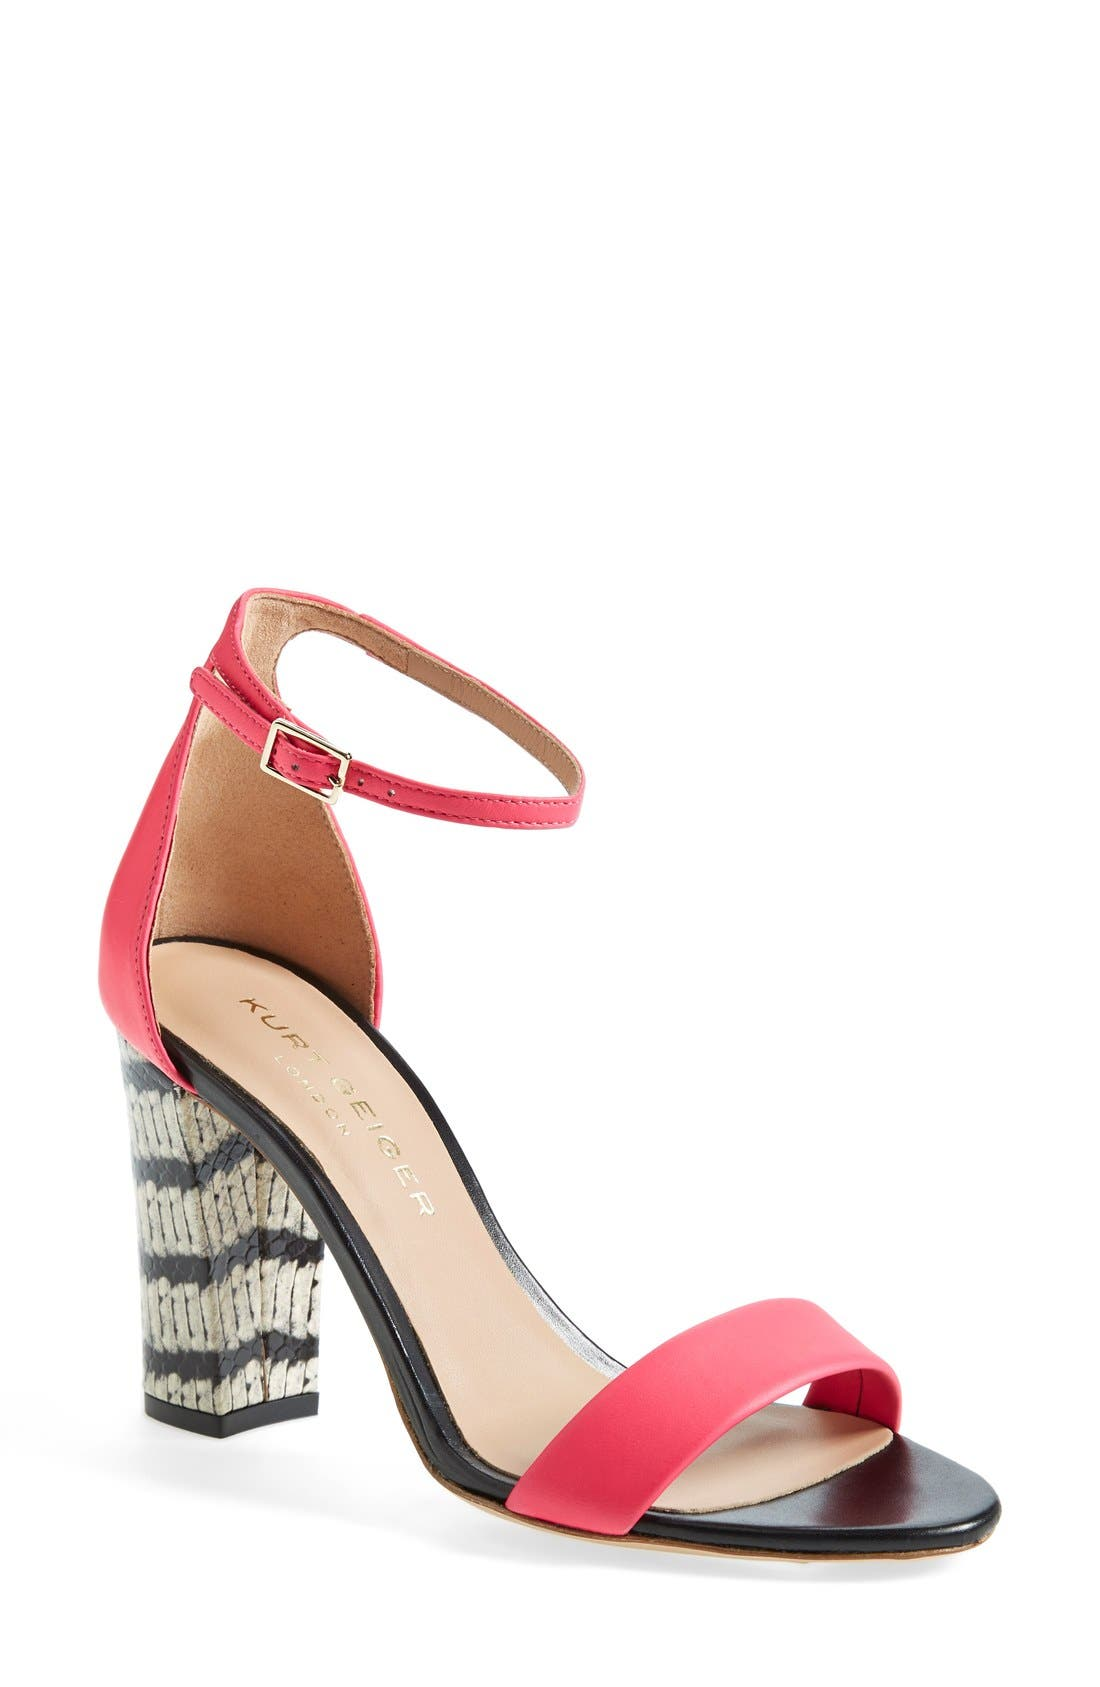 Alternate Image 1 Selected - Kurt Geiger London 'Isabella' Ankle Strap Sandal (Women)